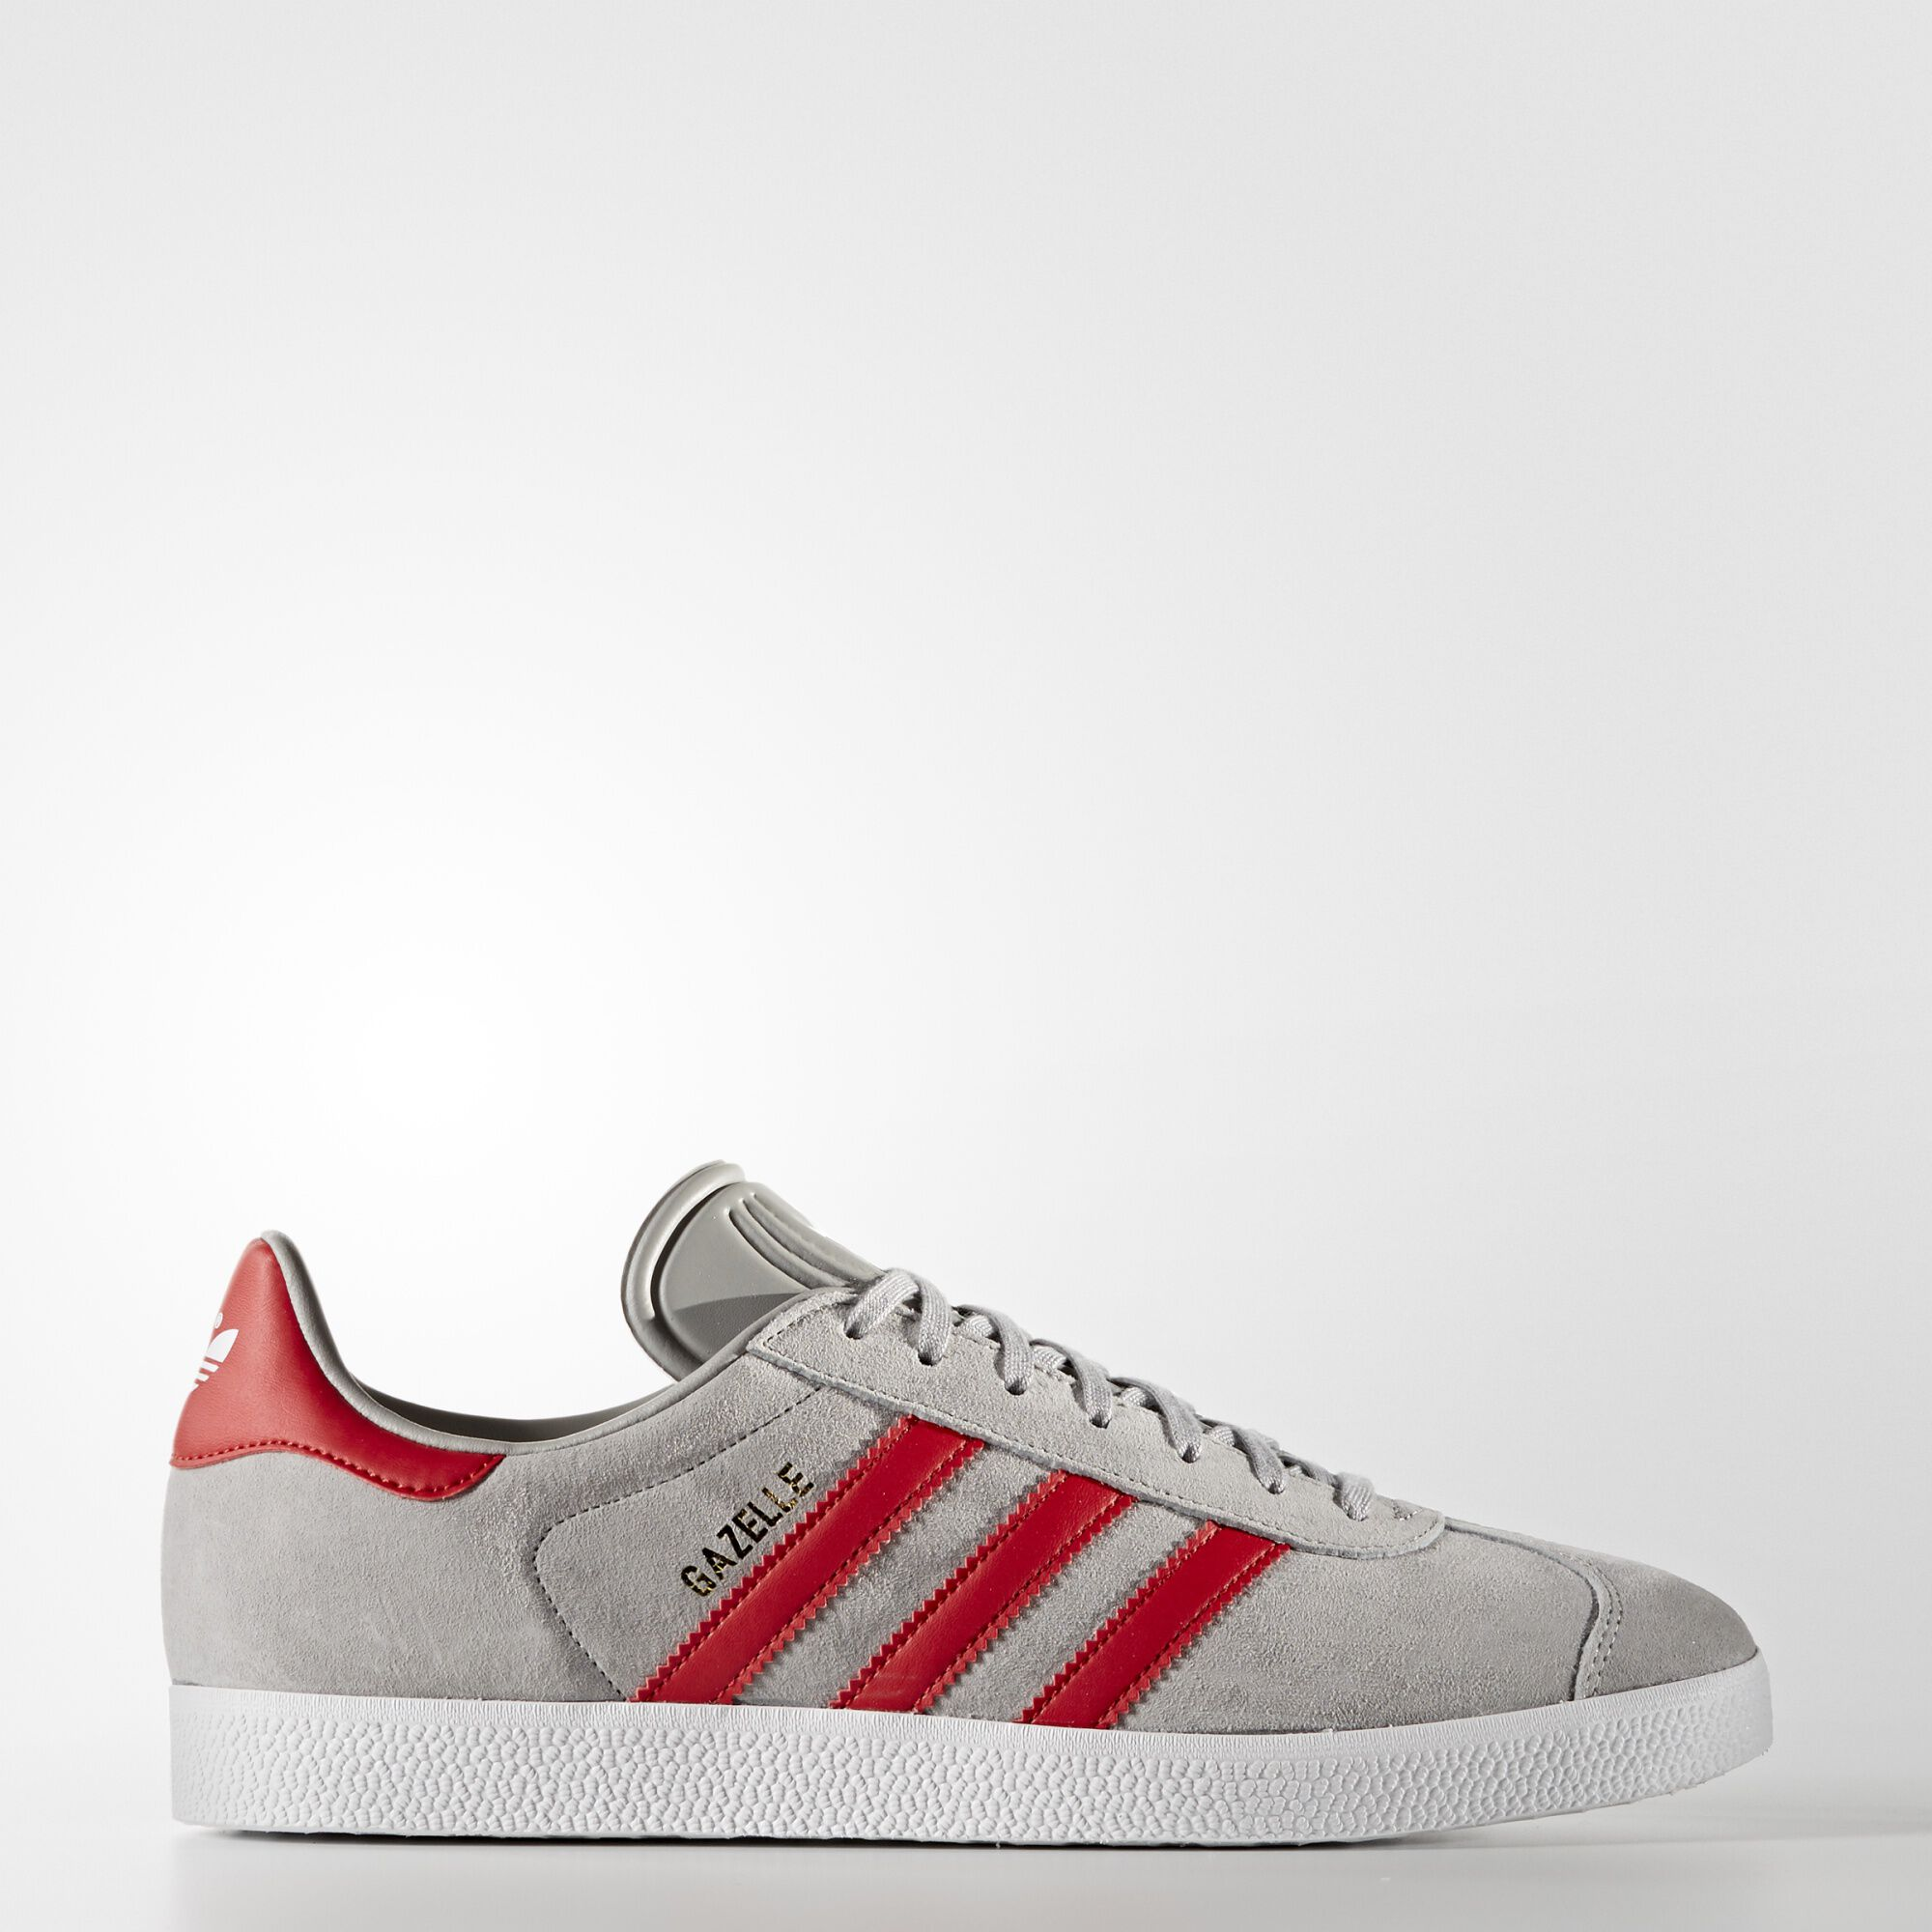 adidas shoes cheap online india discount adidas gazelle shoes grey